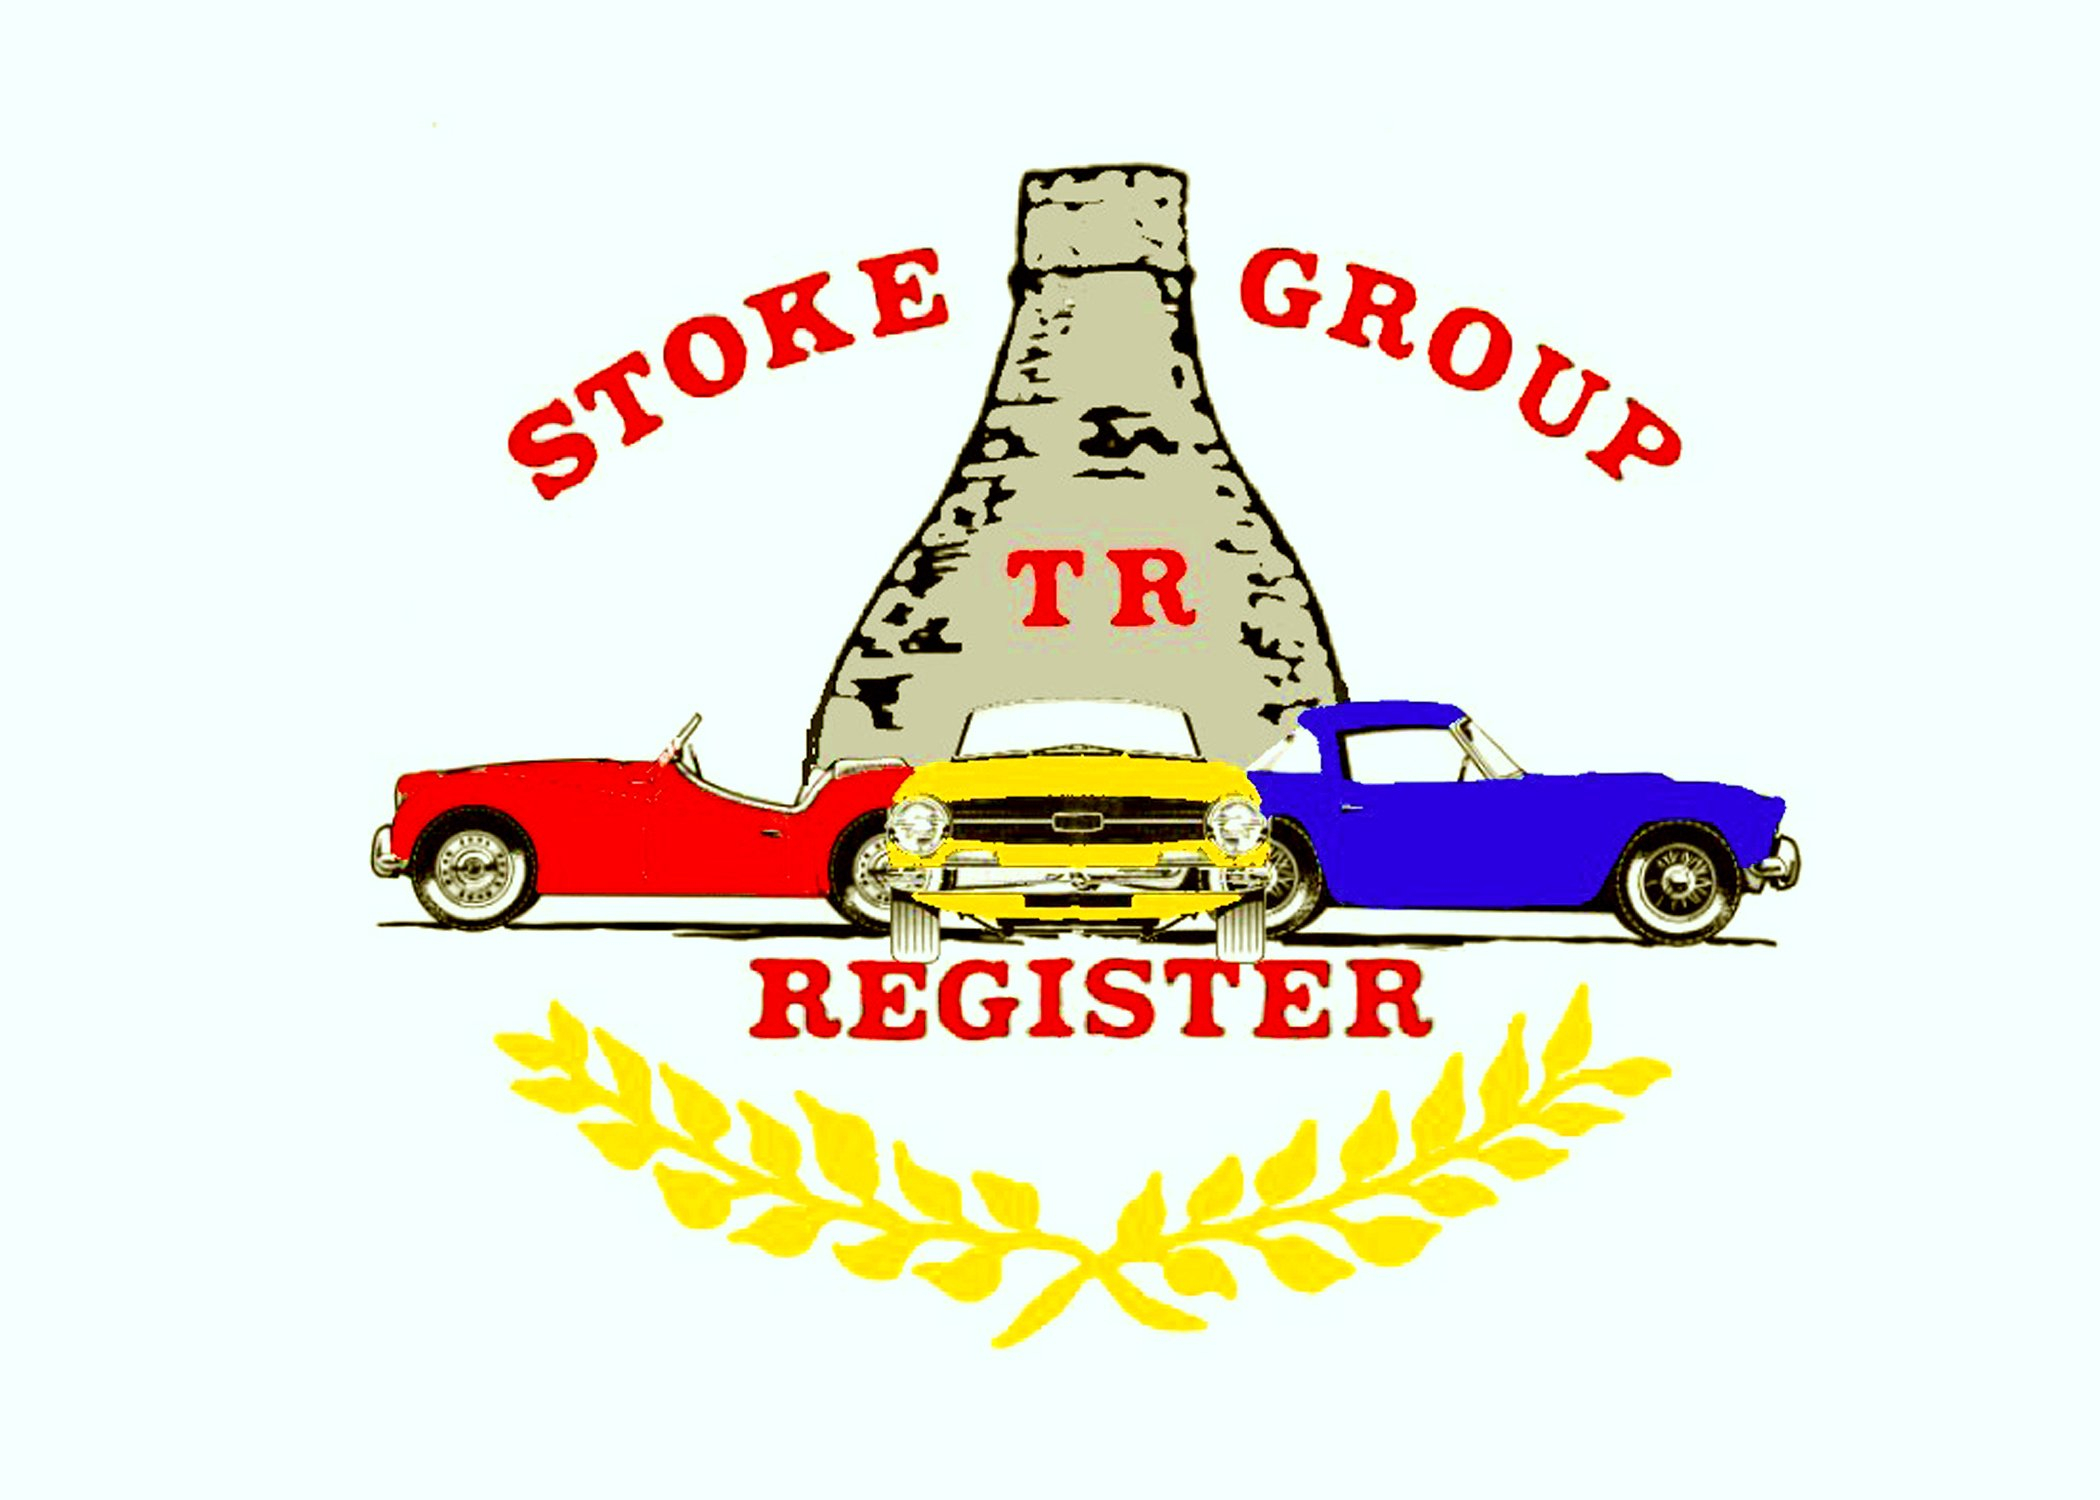 Stoke Tr What's On To June And Calendar For Rest Of 2019 Cars 3 Calendar 2019